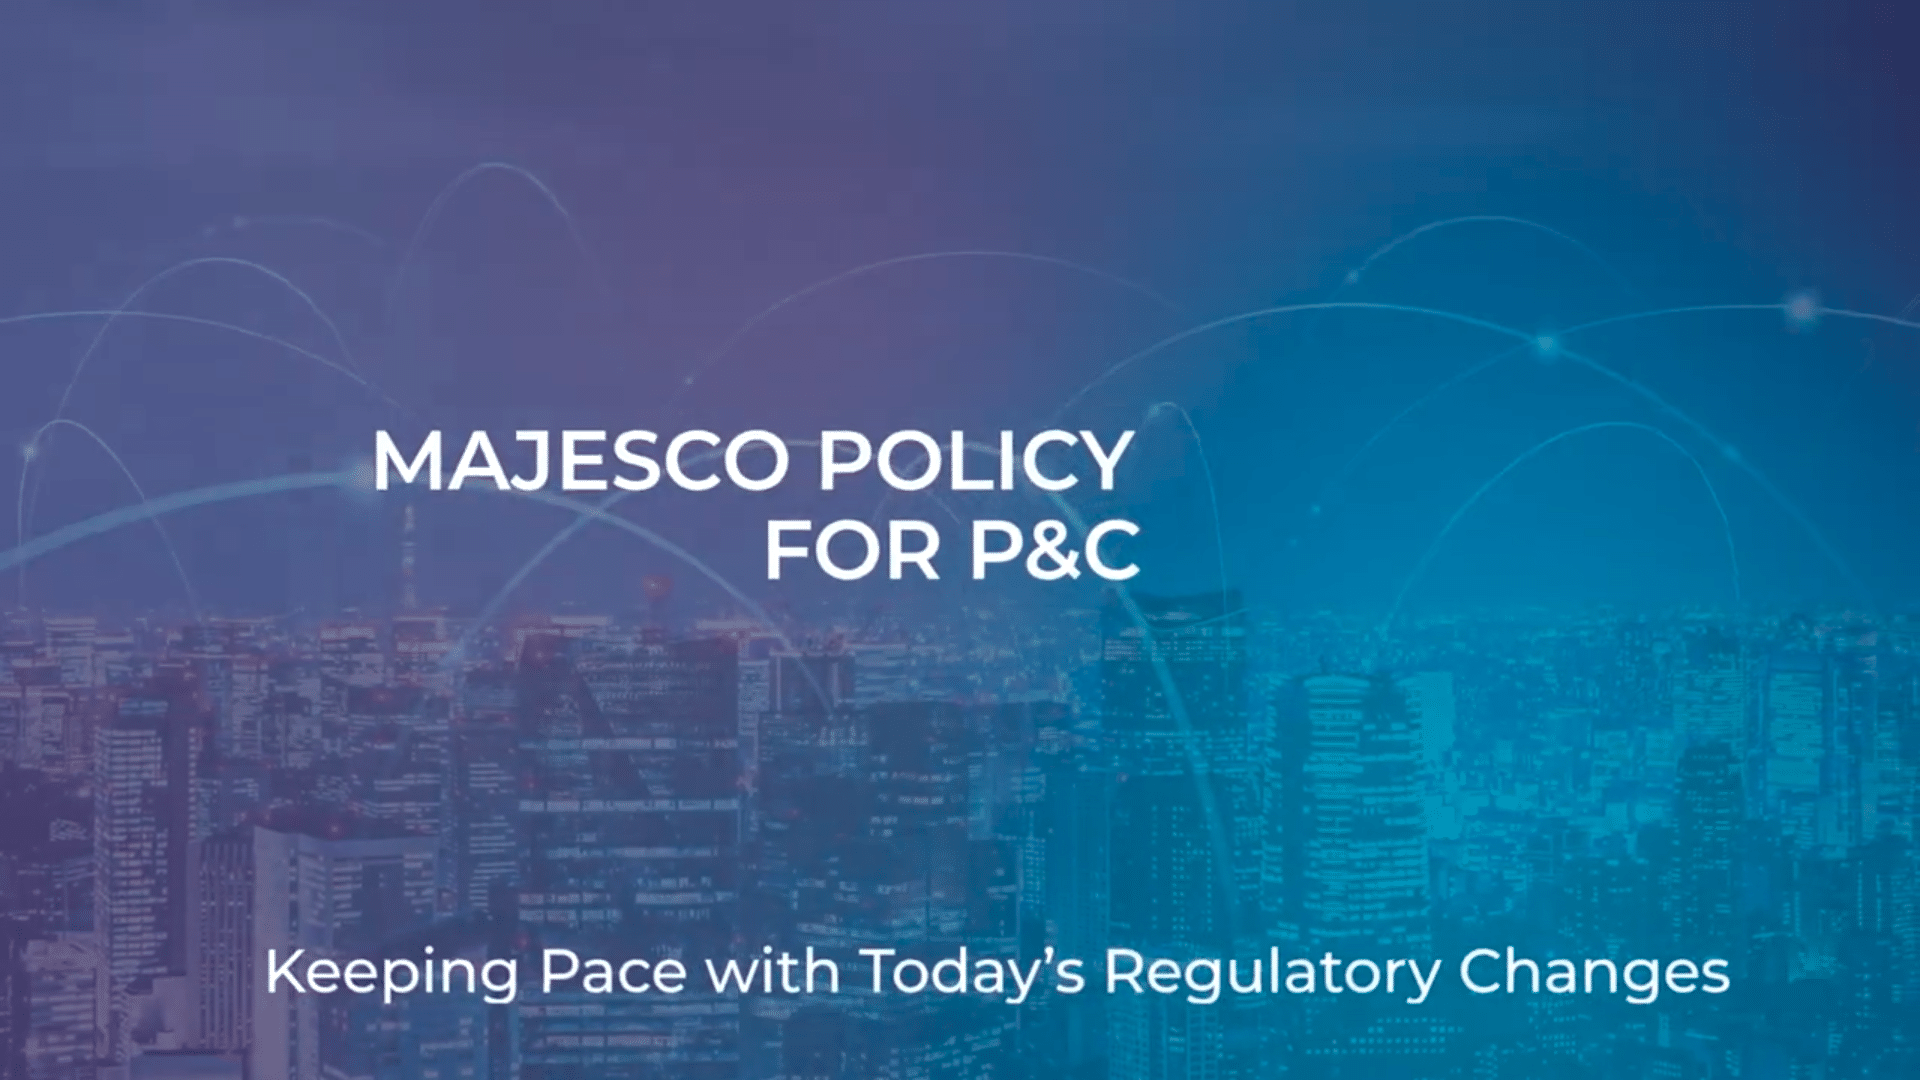 Majesco Policy for P&C – Keeping Pace with Today's Regulatory Changes